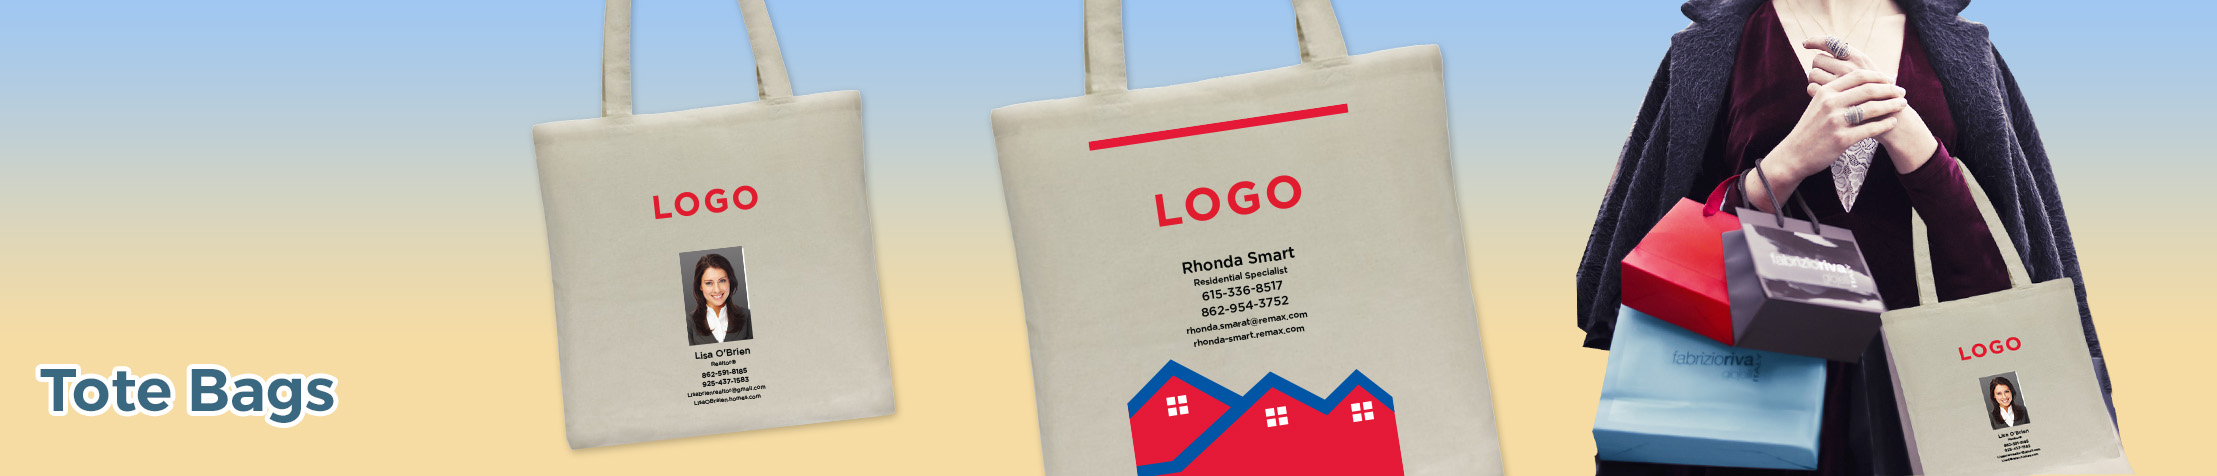 RE/MAX Real Estate Tote Bags - RE/MAX  personalized realtor promotional products | BestPrintBuy.com